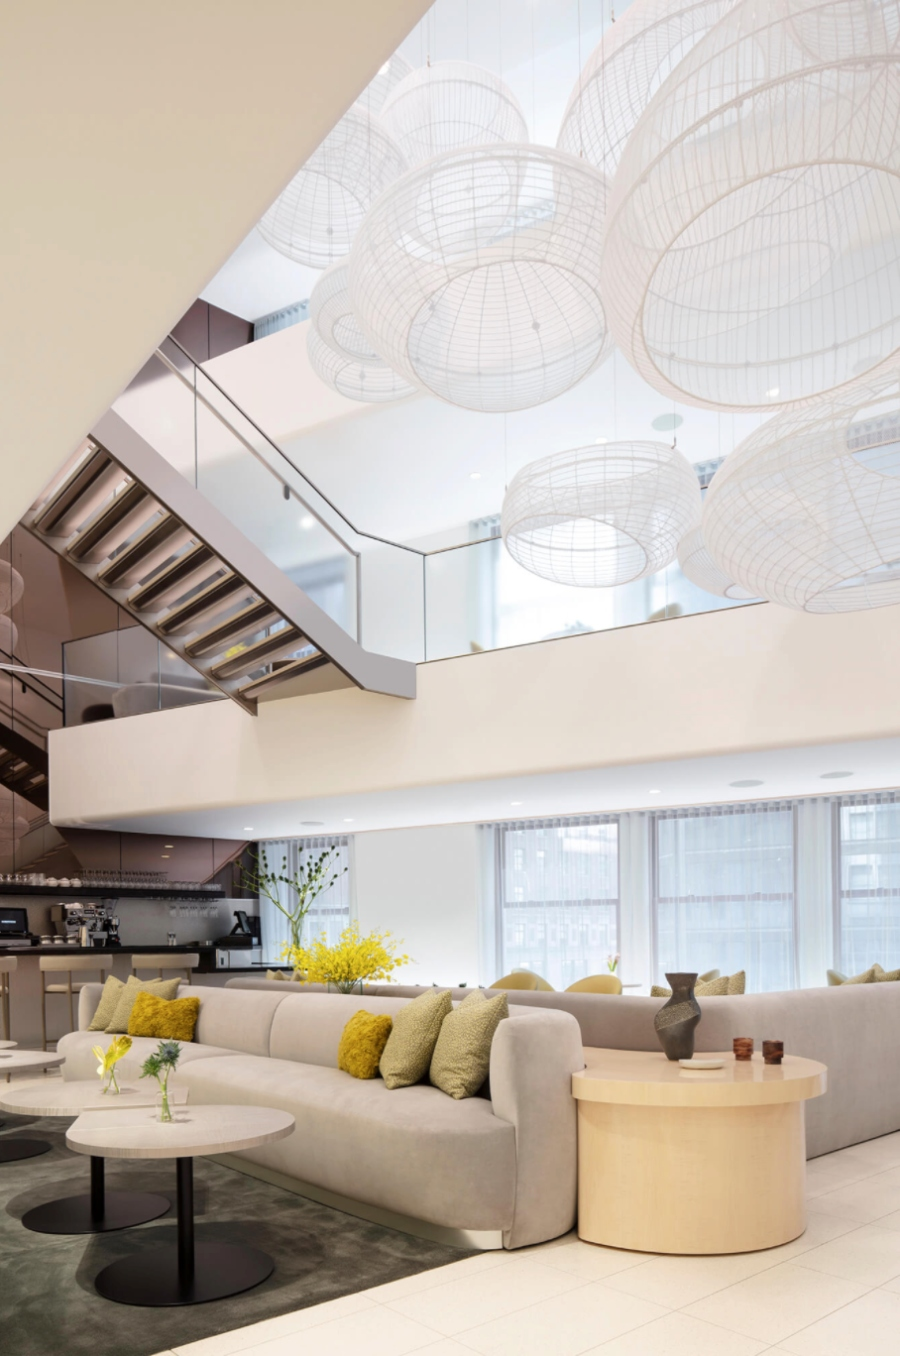 The Best of USA: Top 20 NYC Interior Designers nyc interior designers The Best of USA: The Top 20 NYC Interior Designers The Best of USA  Top 20 NYC Interior Designers 24